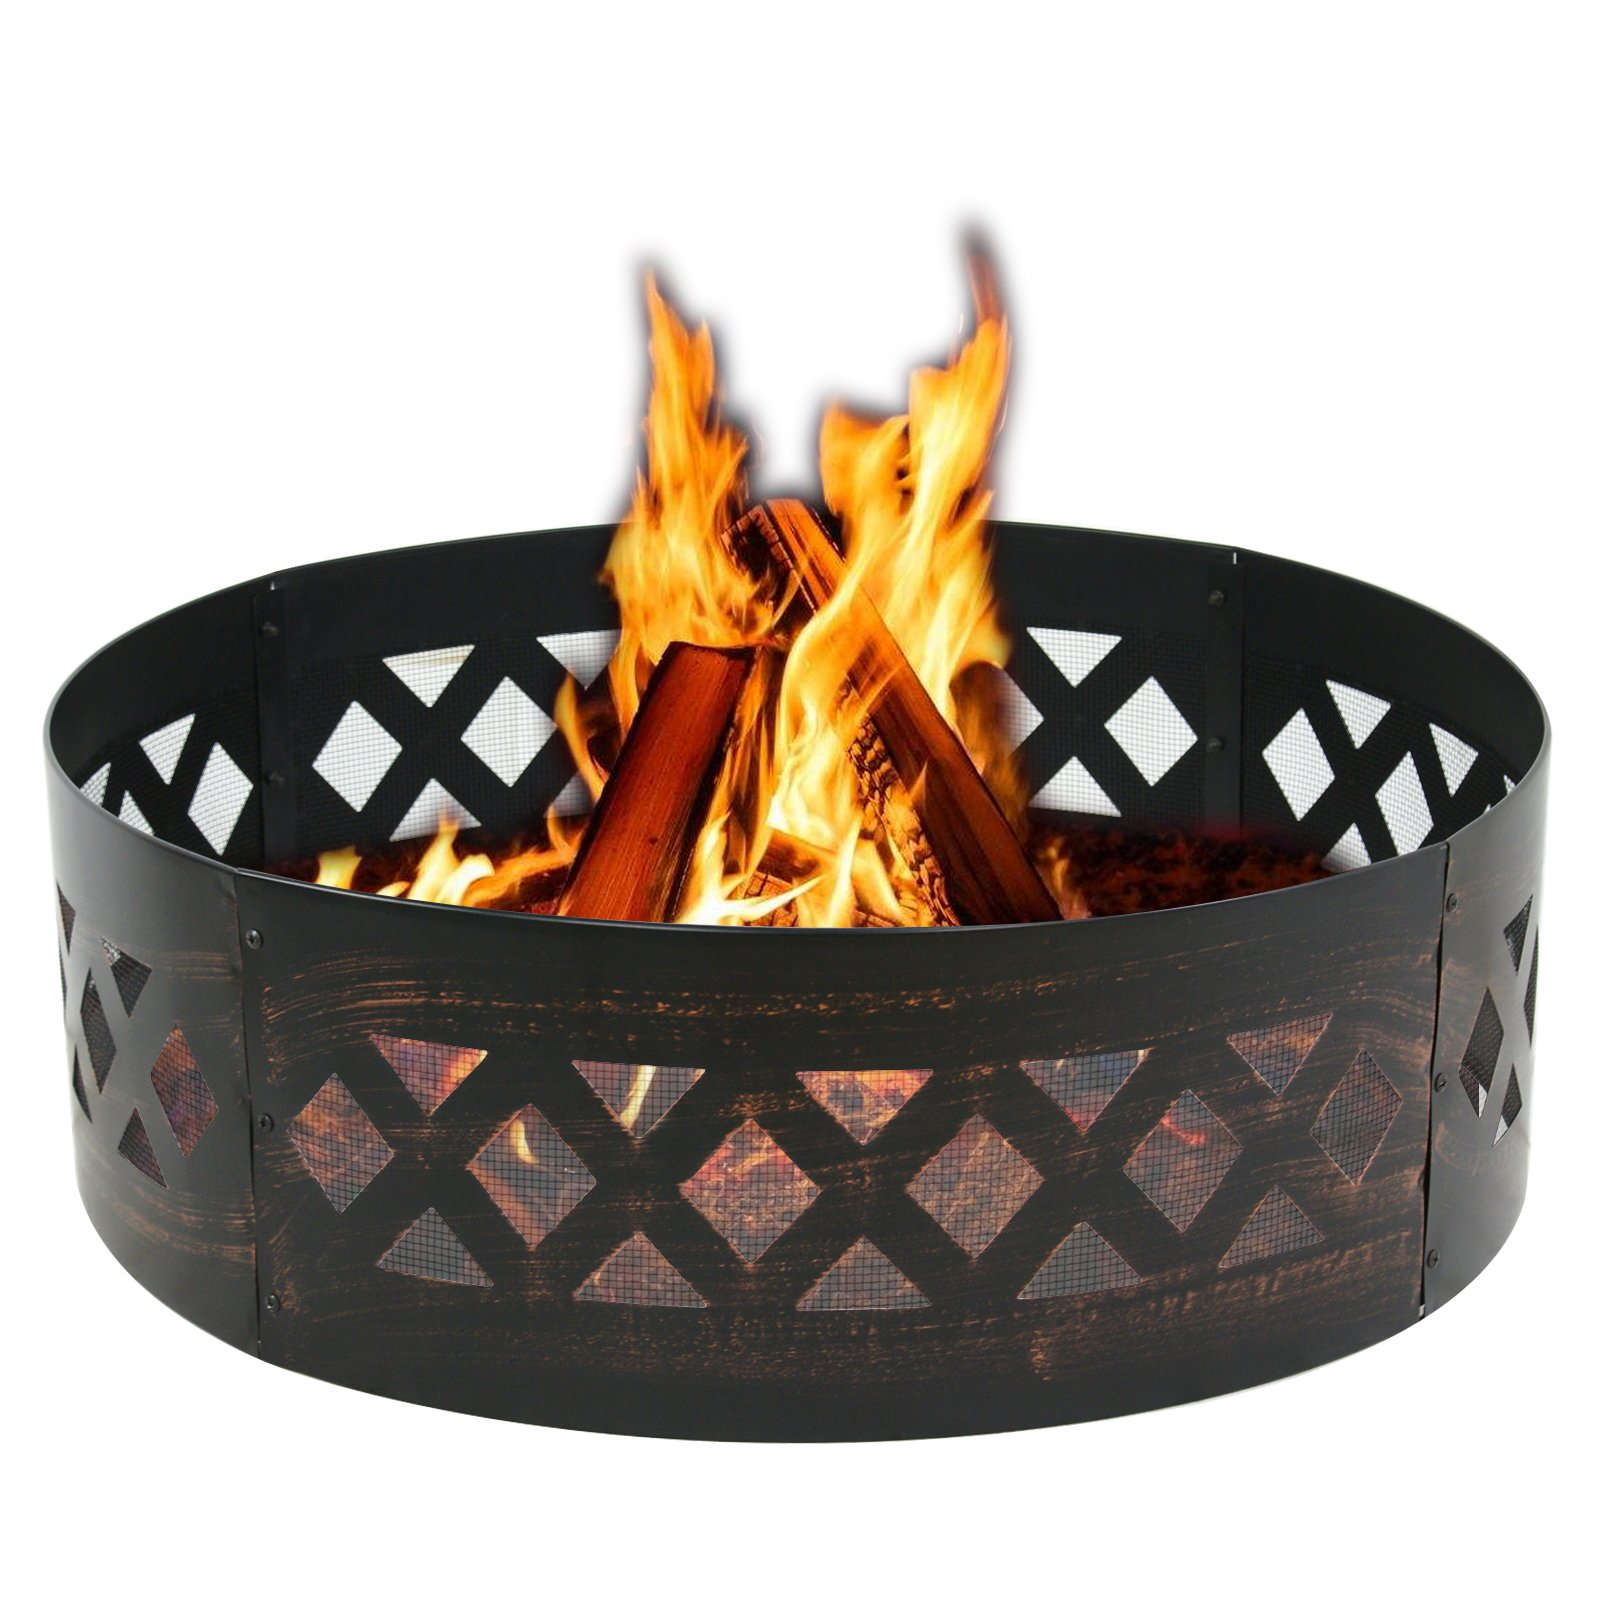 LEMY 37'' Heavy Duty Fire Ring Wilderness Fire Pit Ring Campfire Ring Steel Patio Camping Outdoors by LEMY